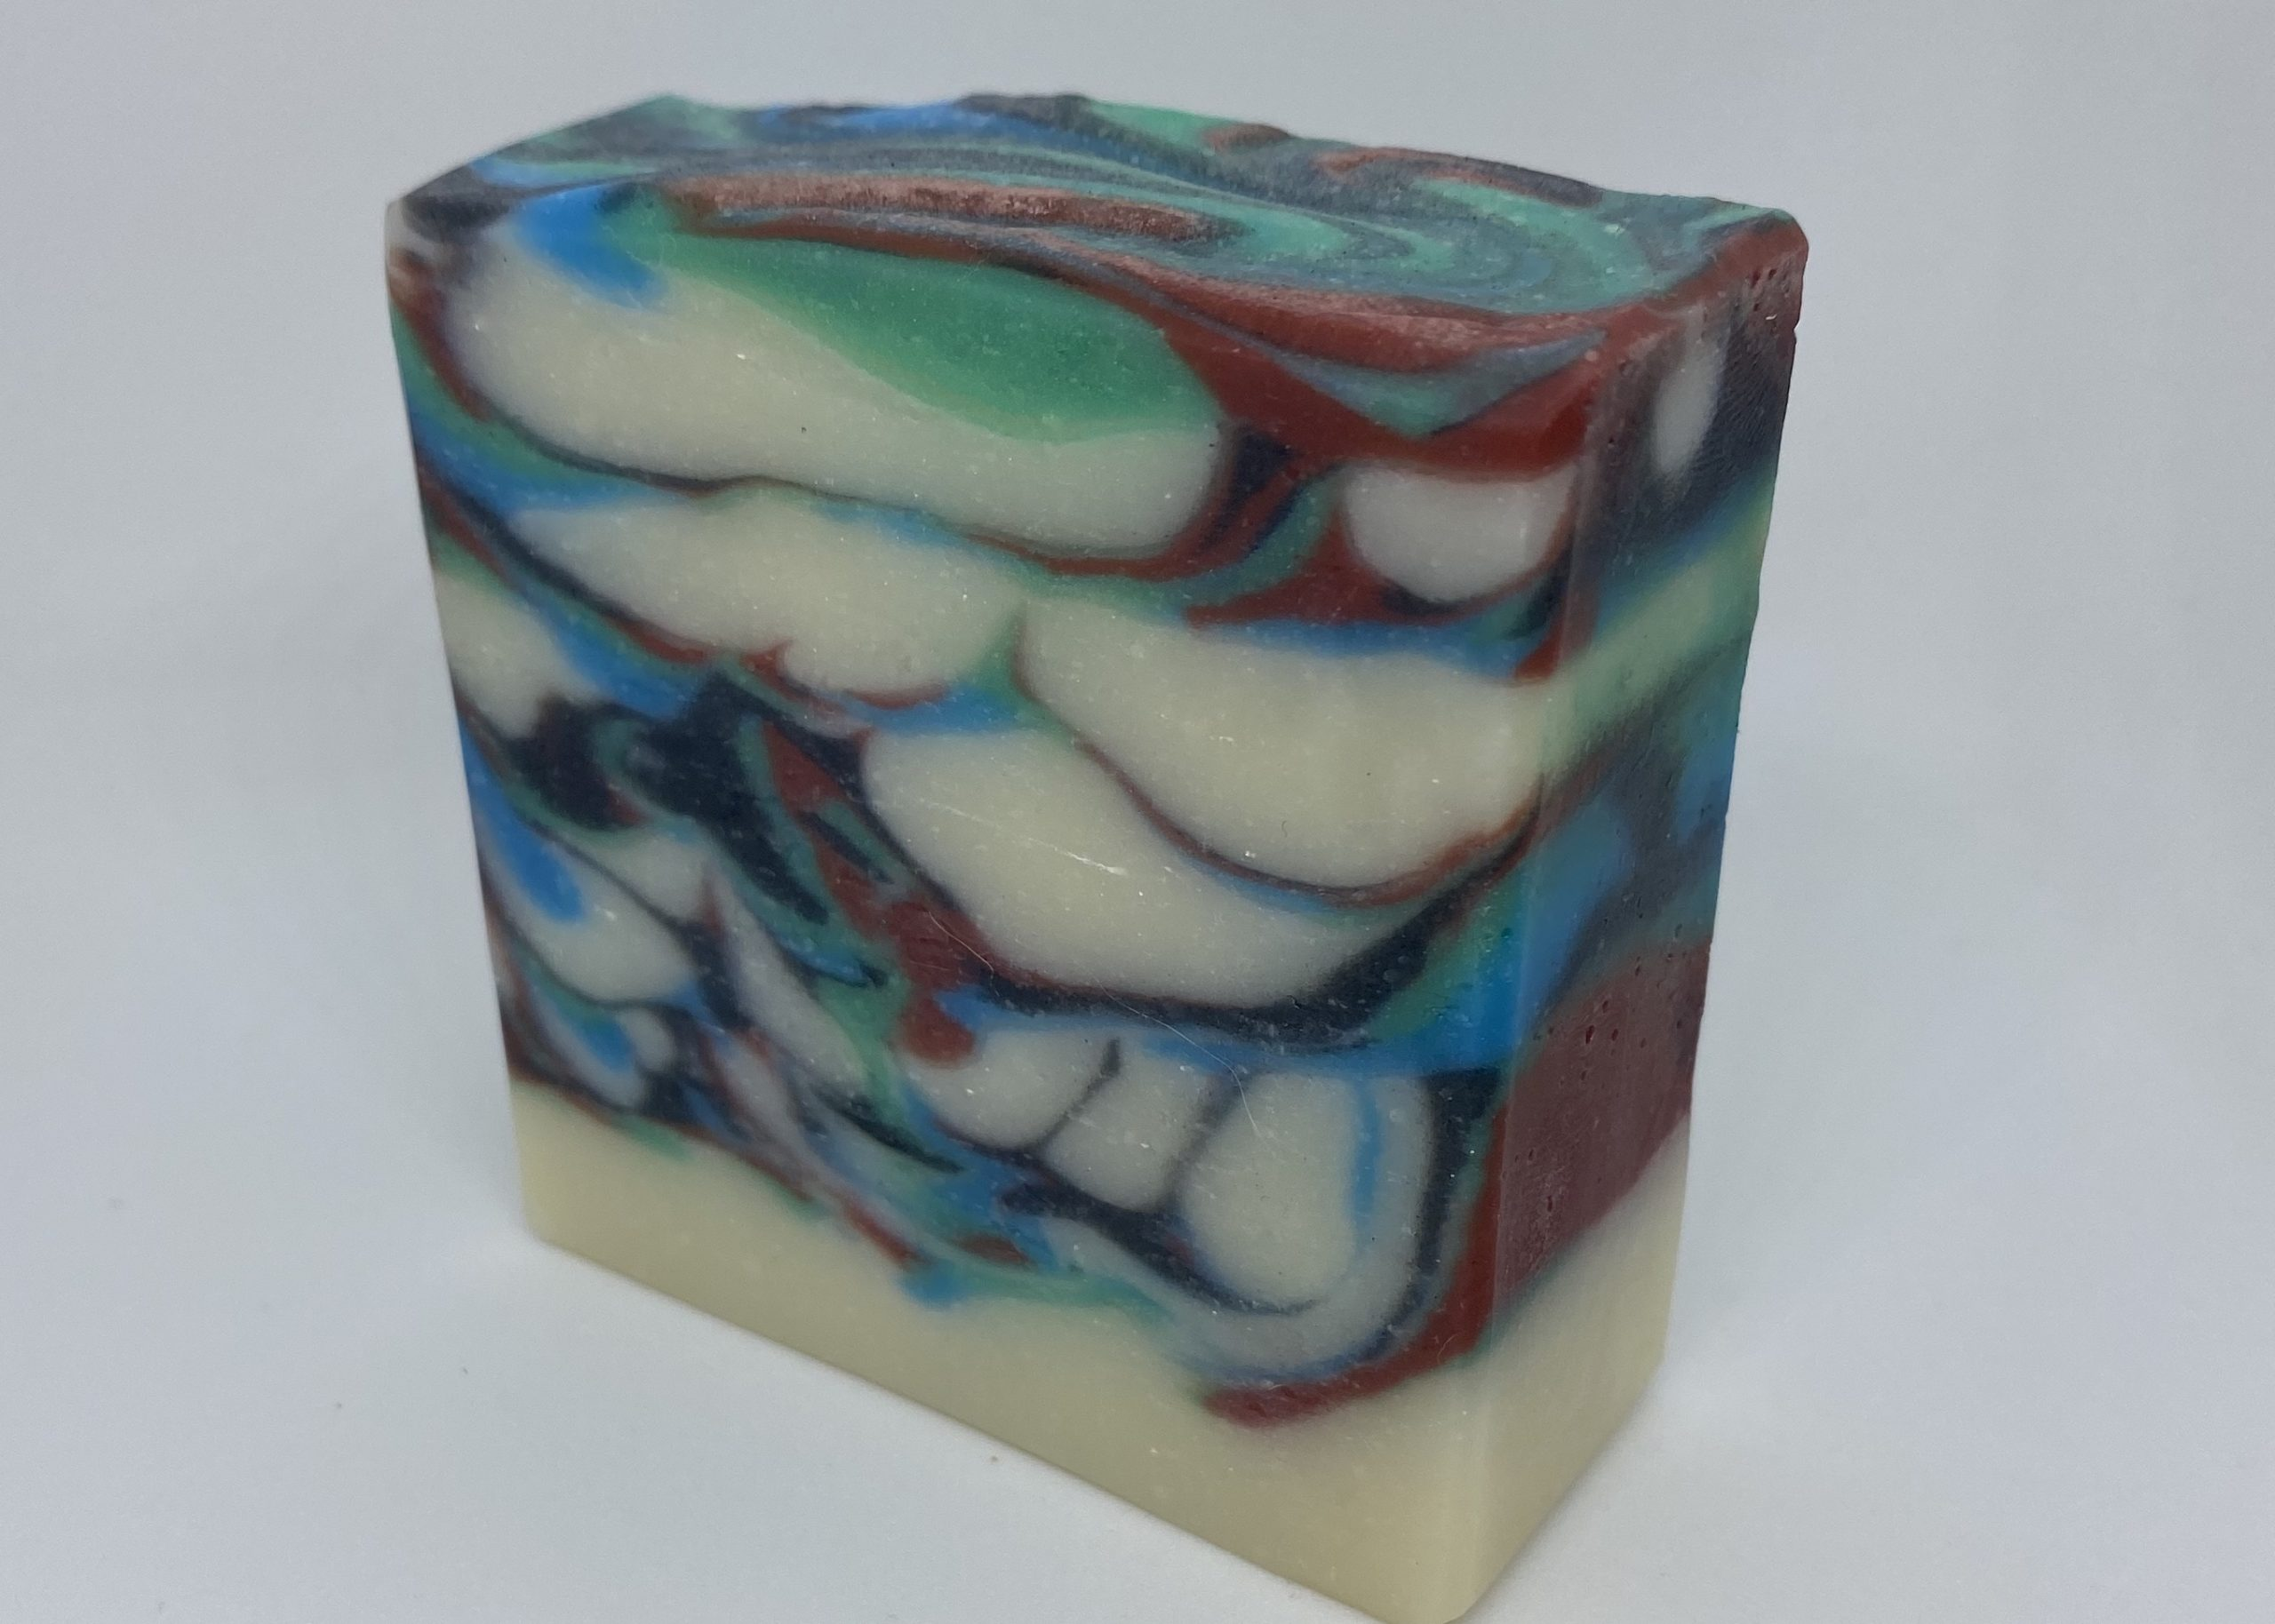 soap inspired by magic